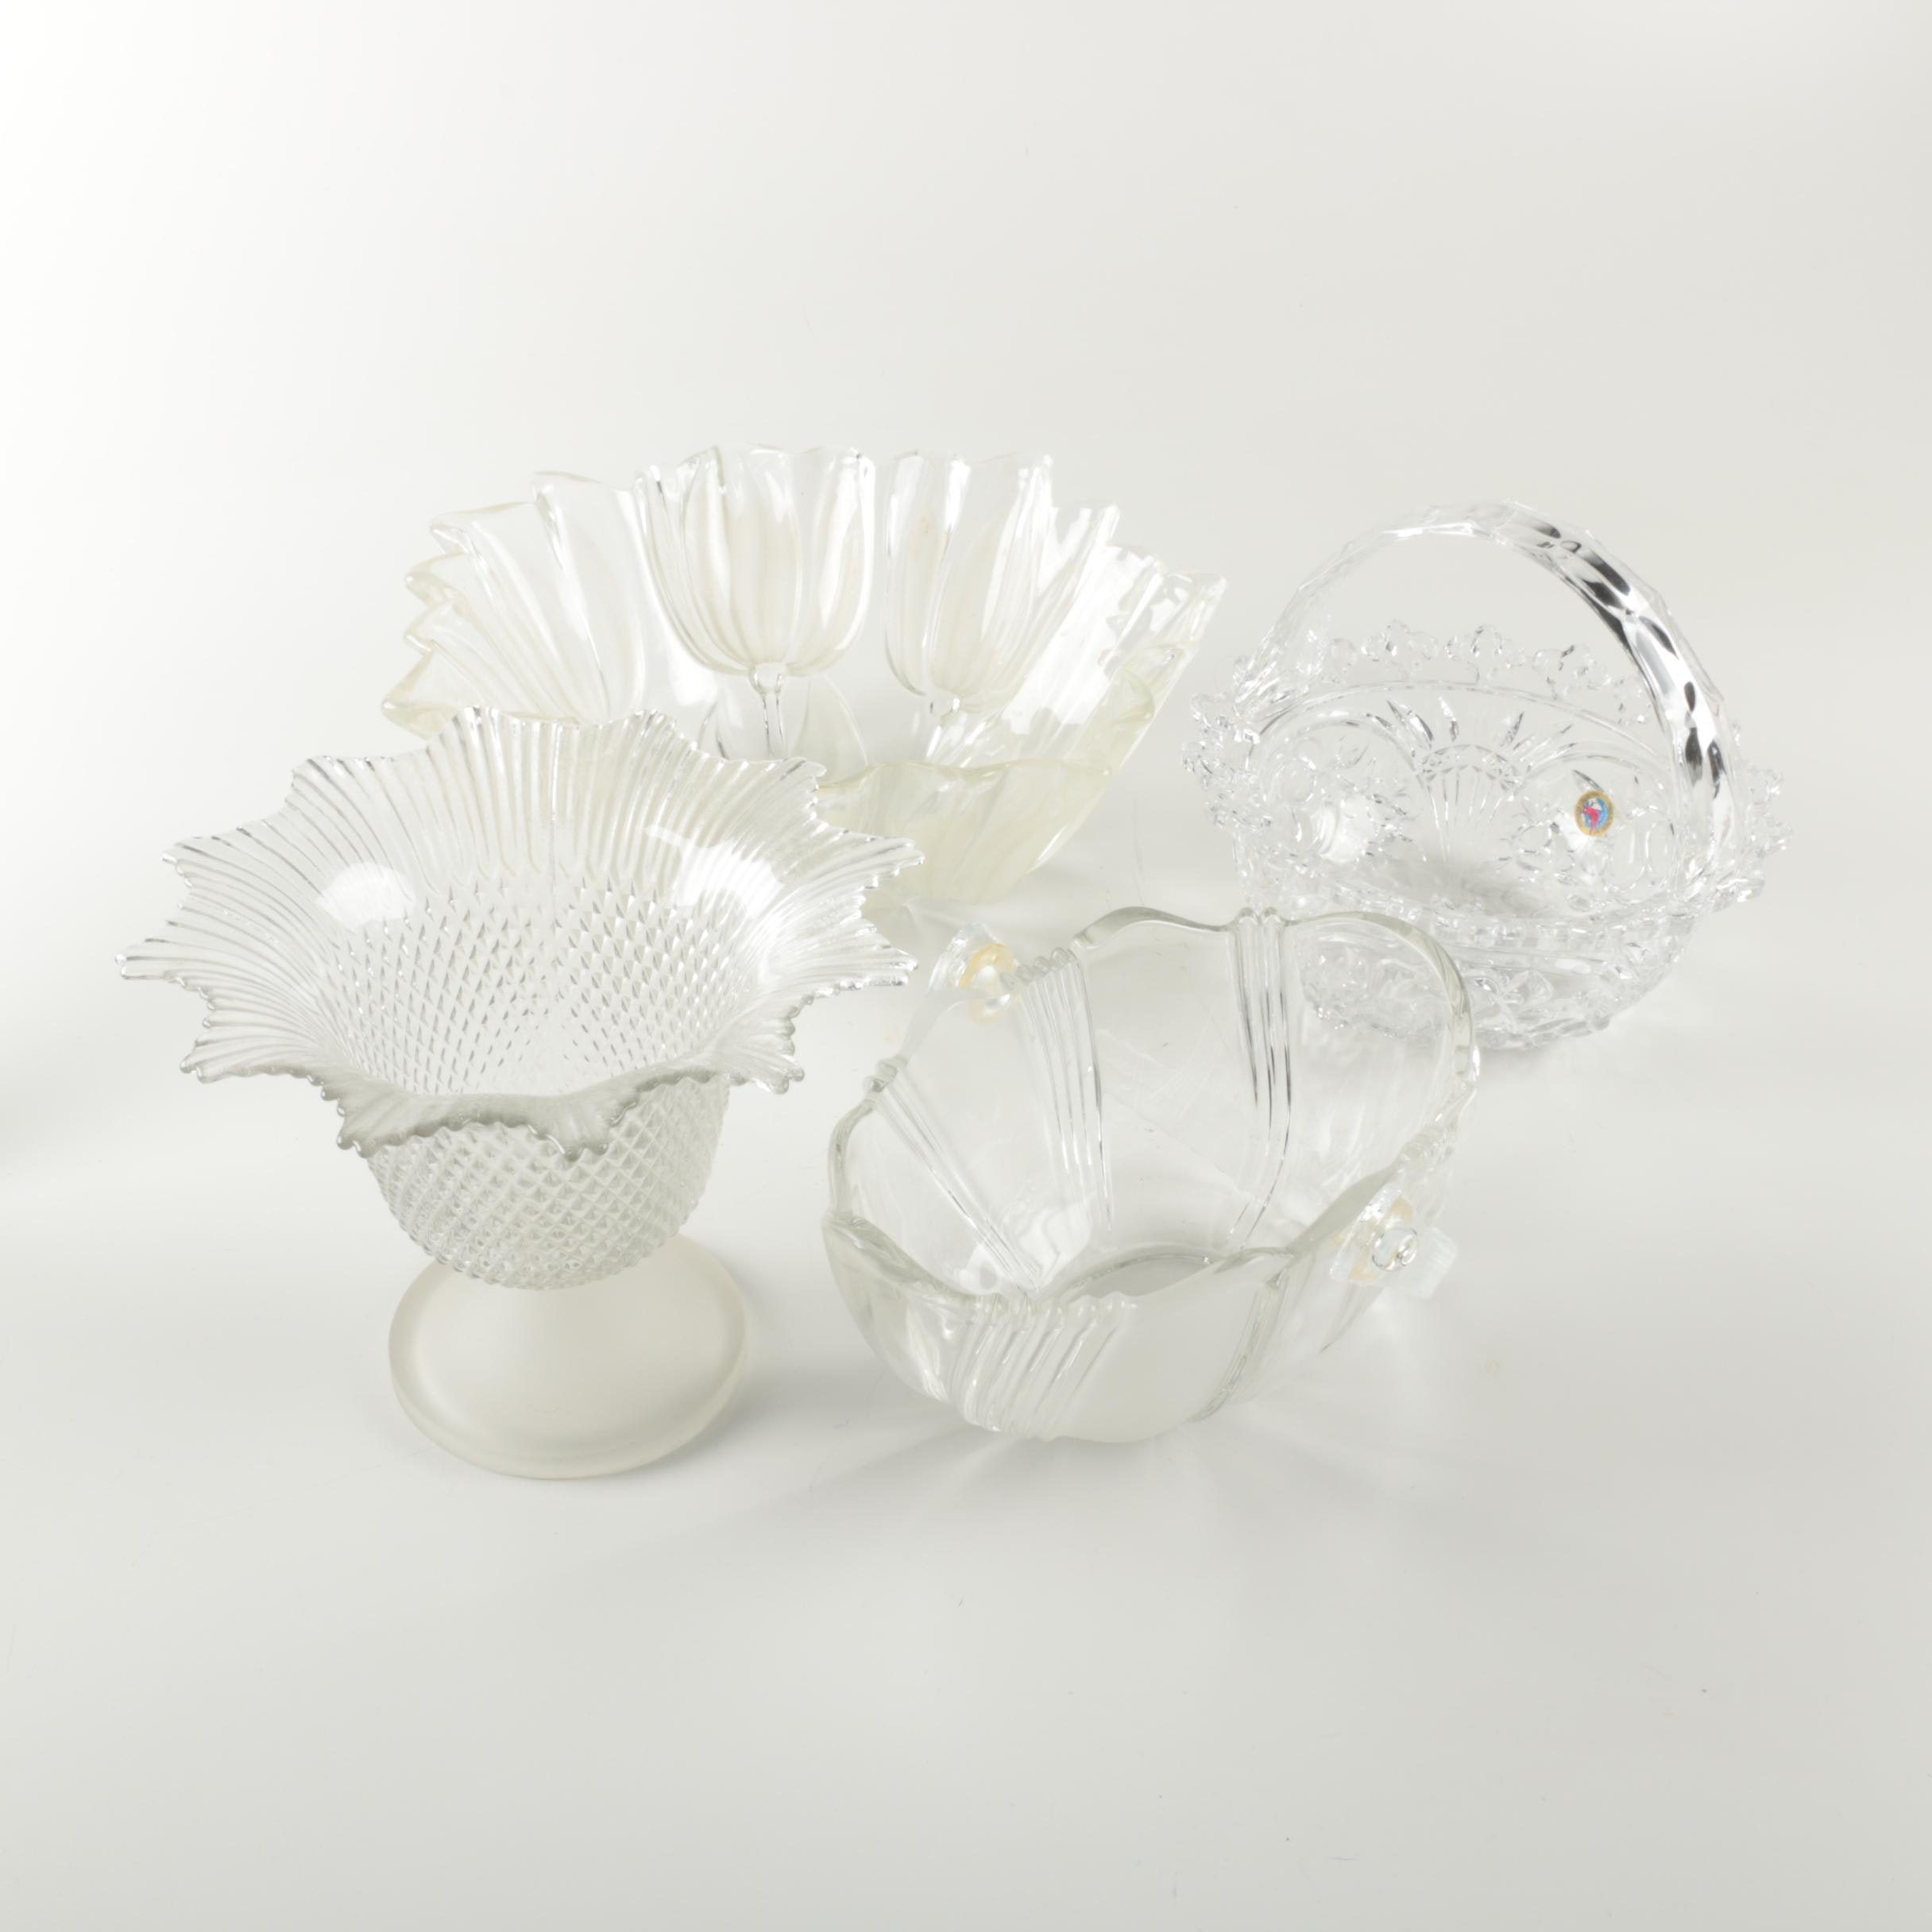 Decorative Crystal and Glass Bowls